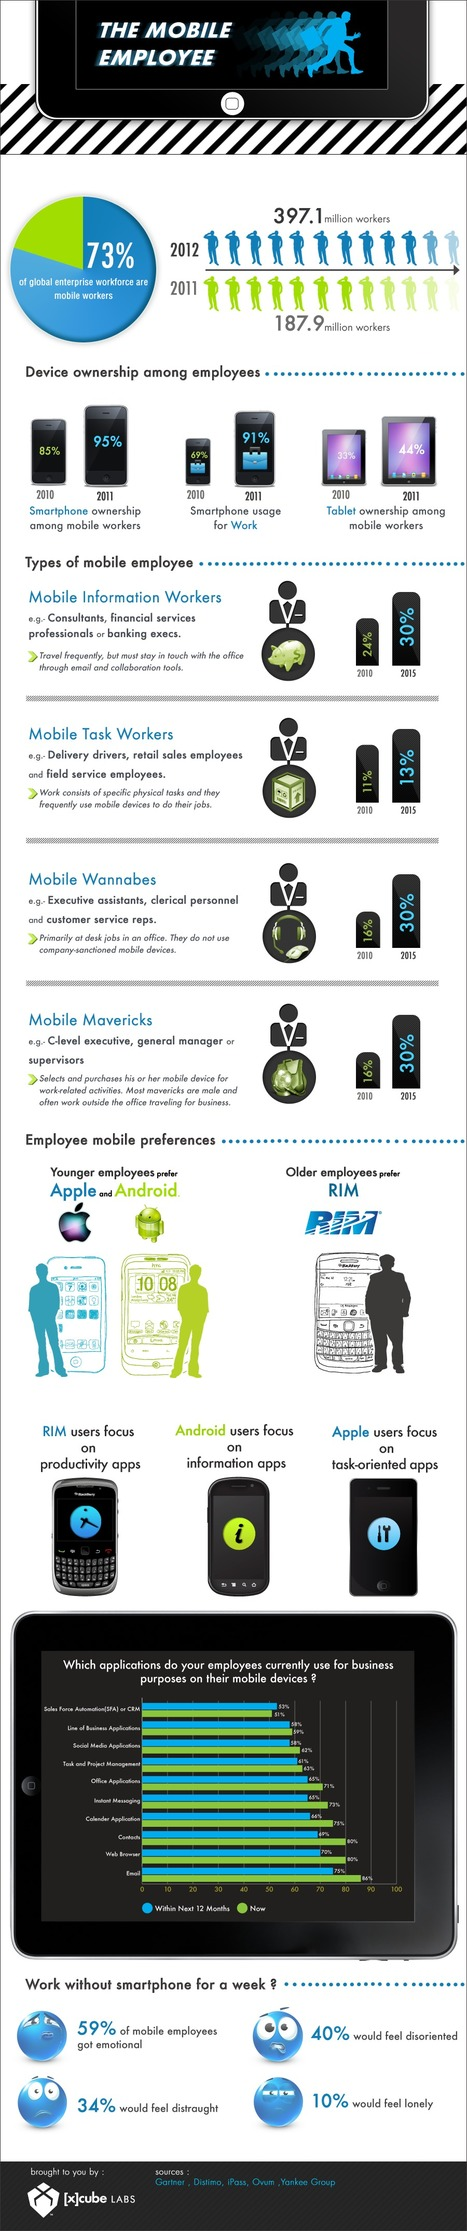 The Mobile Employee : Mobility Adoption Among Enterprise Workforce : Infographics by [x]cube LABS | Runzheimer International | Scoop.it